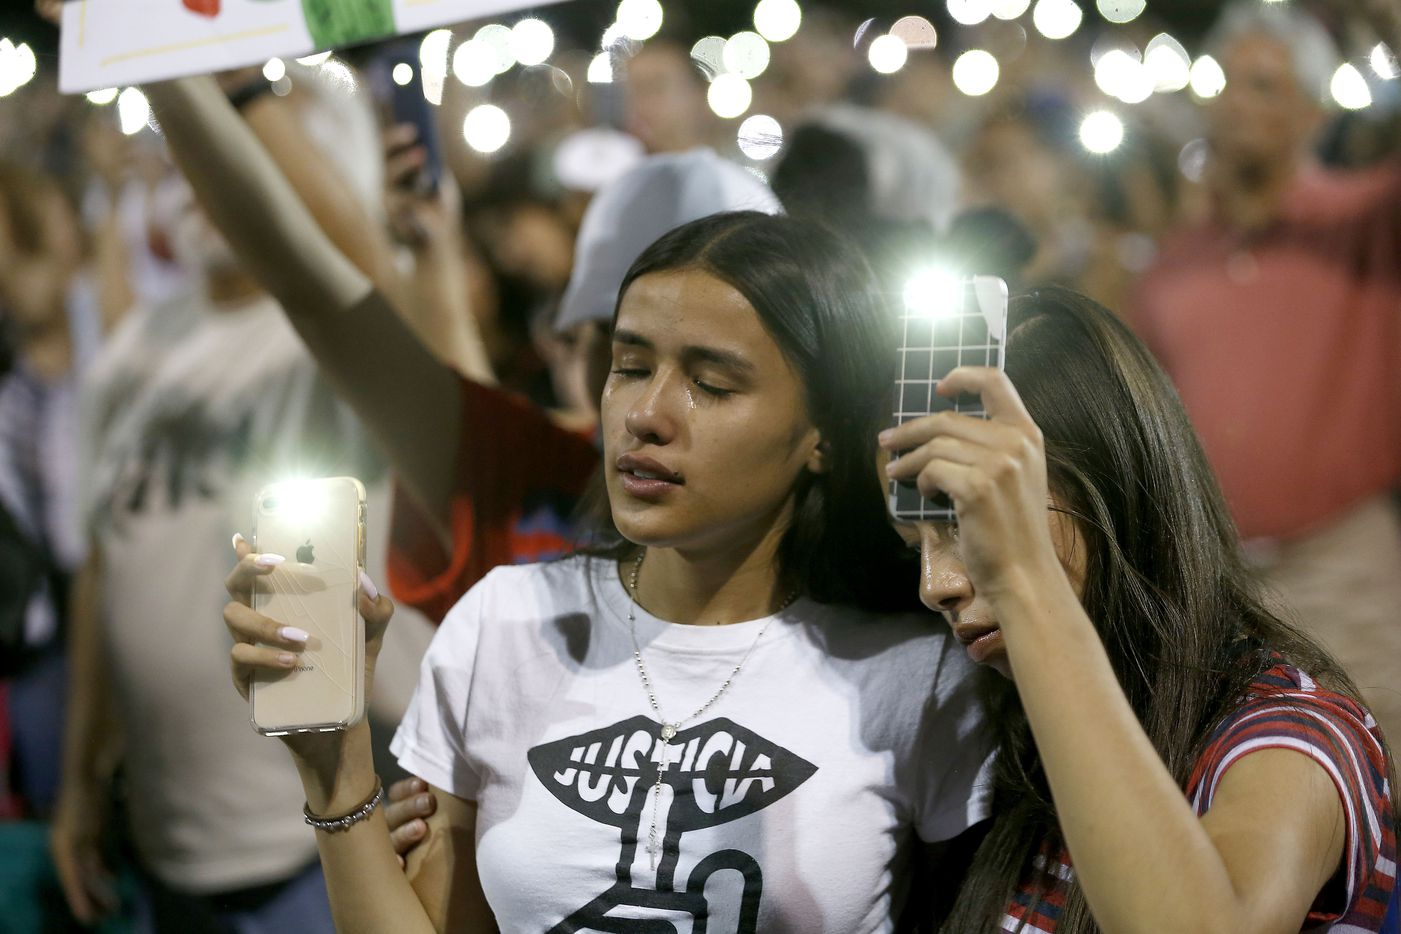 Samantha Salazar (left) and Sarah Estrada join well over a thousand mourners gathered at Ponder Park in El Paso, Texas for a community vigil on Sunday night, Aug. 4, 2019 after a mass shooting at a WalMart the day before left 20 dead and 26 more wounded.